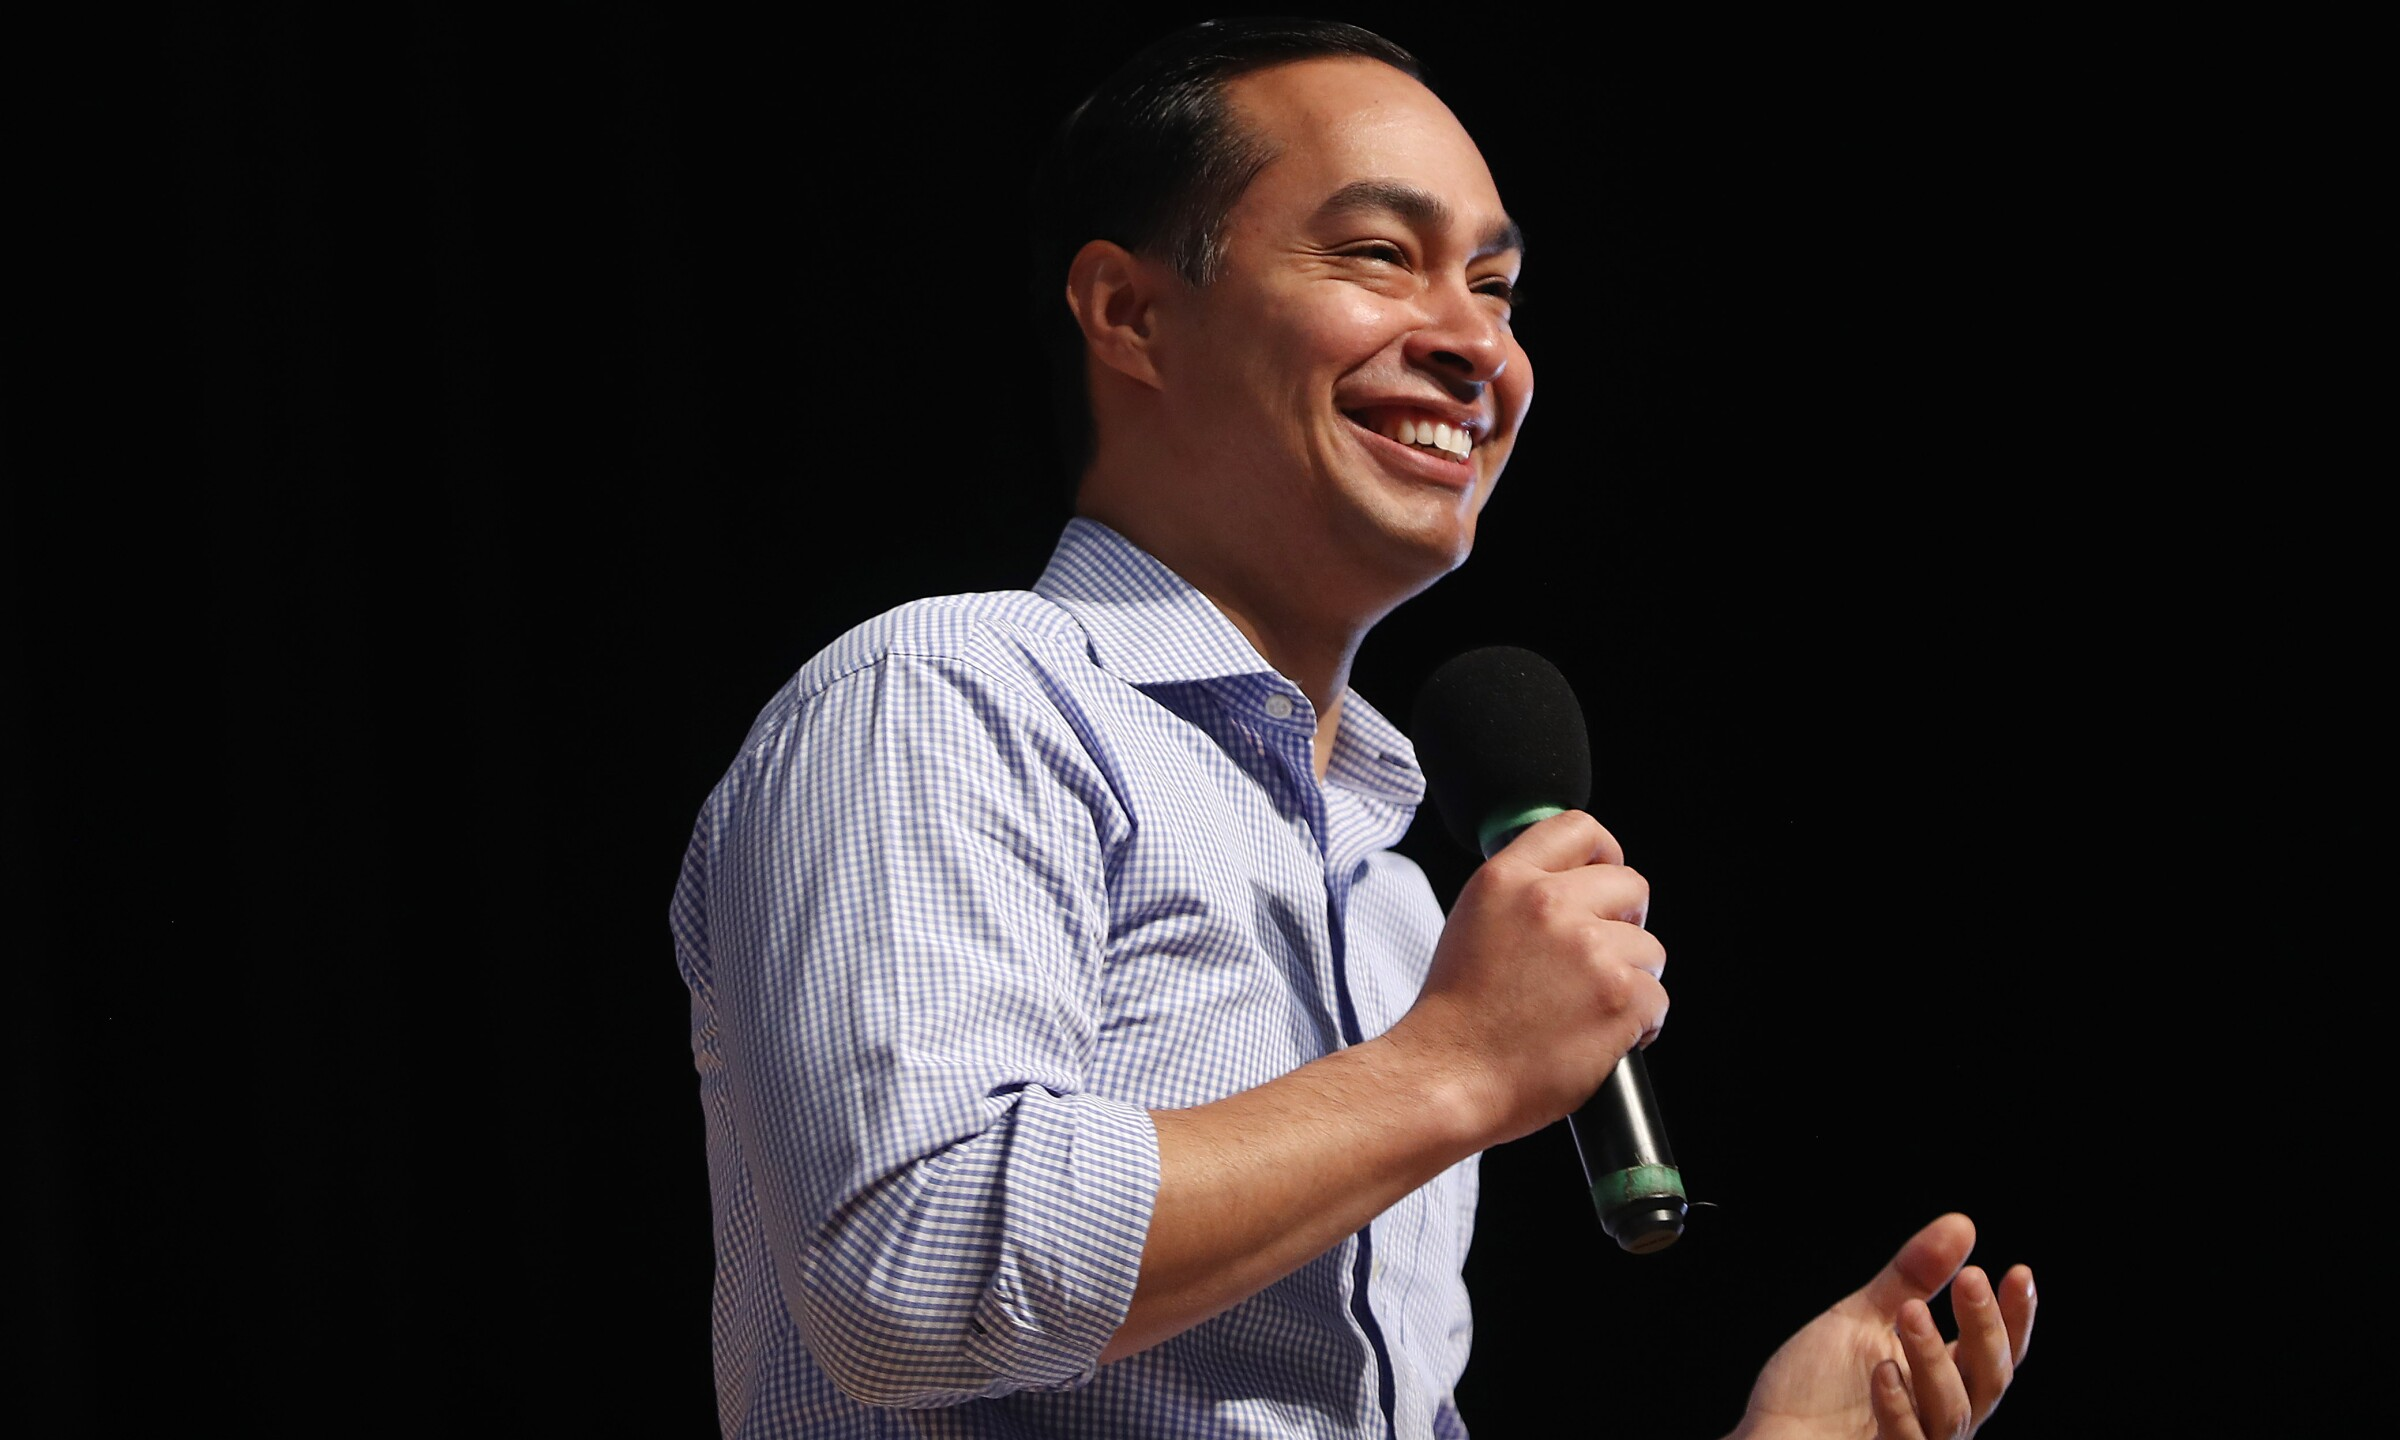 Julian Castro is a former U.S. housing secretary with the Obama administration who announced his candidacy Jan. 12, 2019.